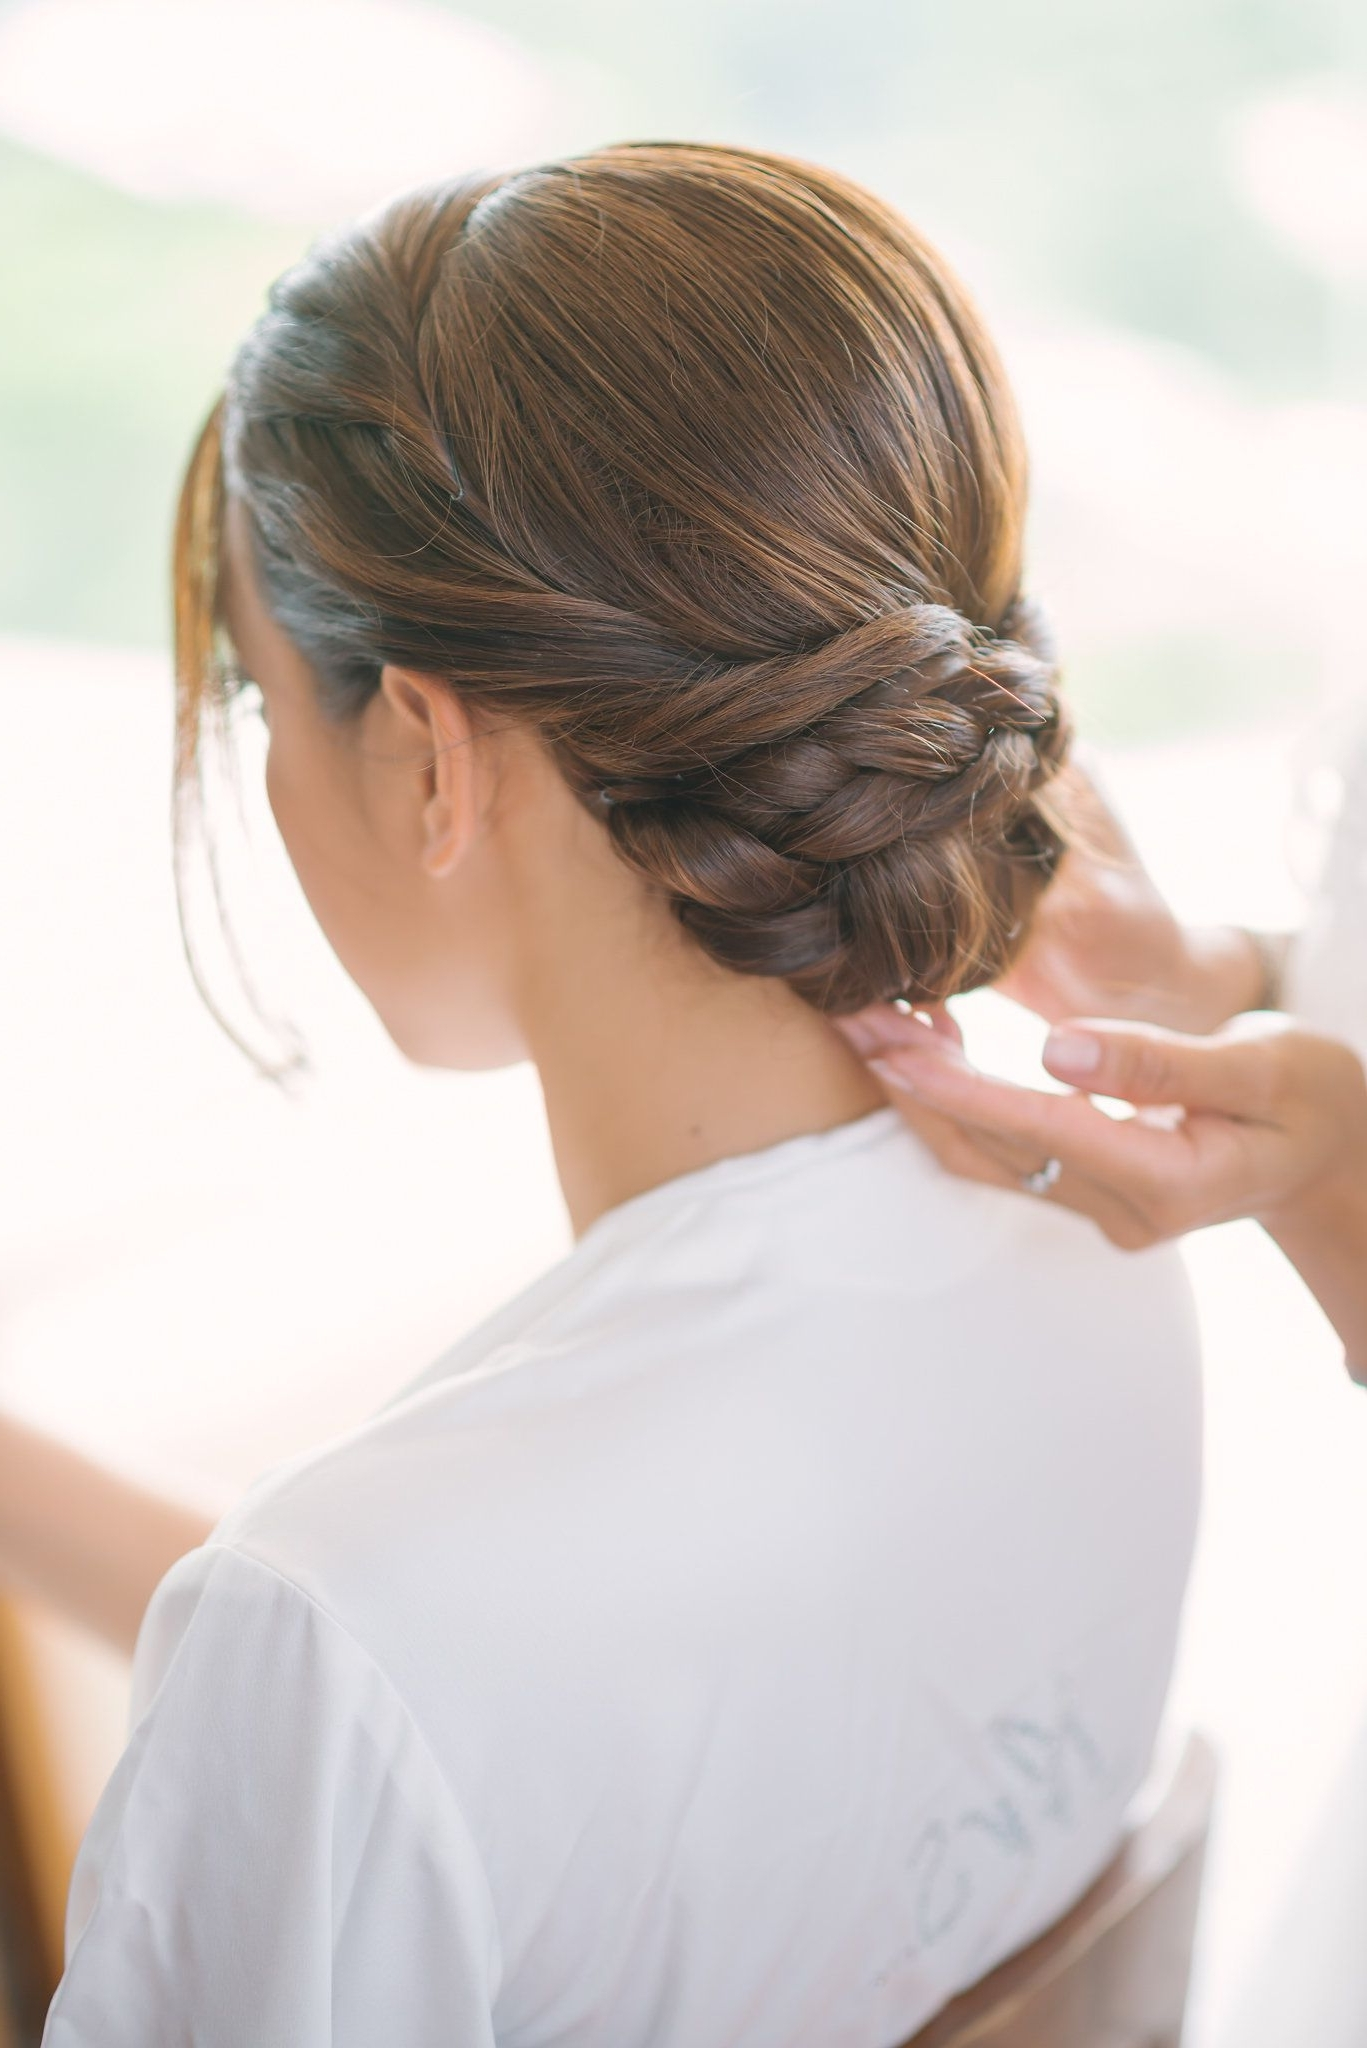 Were You Aware That Happily Ever After Starts On A Beach In Thailand Pertaining To Low Bun Updo Wedding Hairstyles (View 15 of 15)